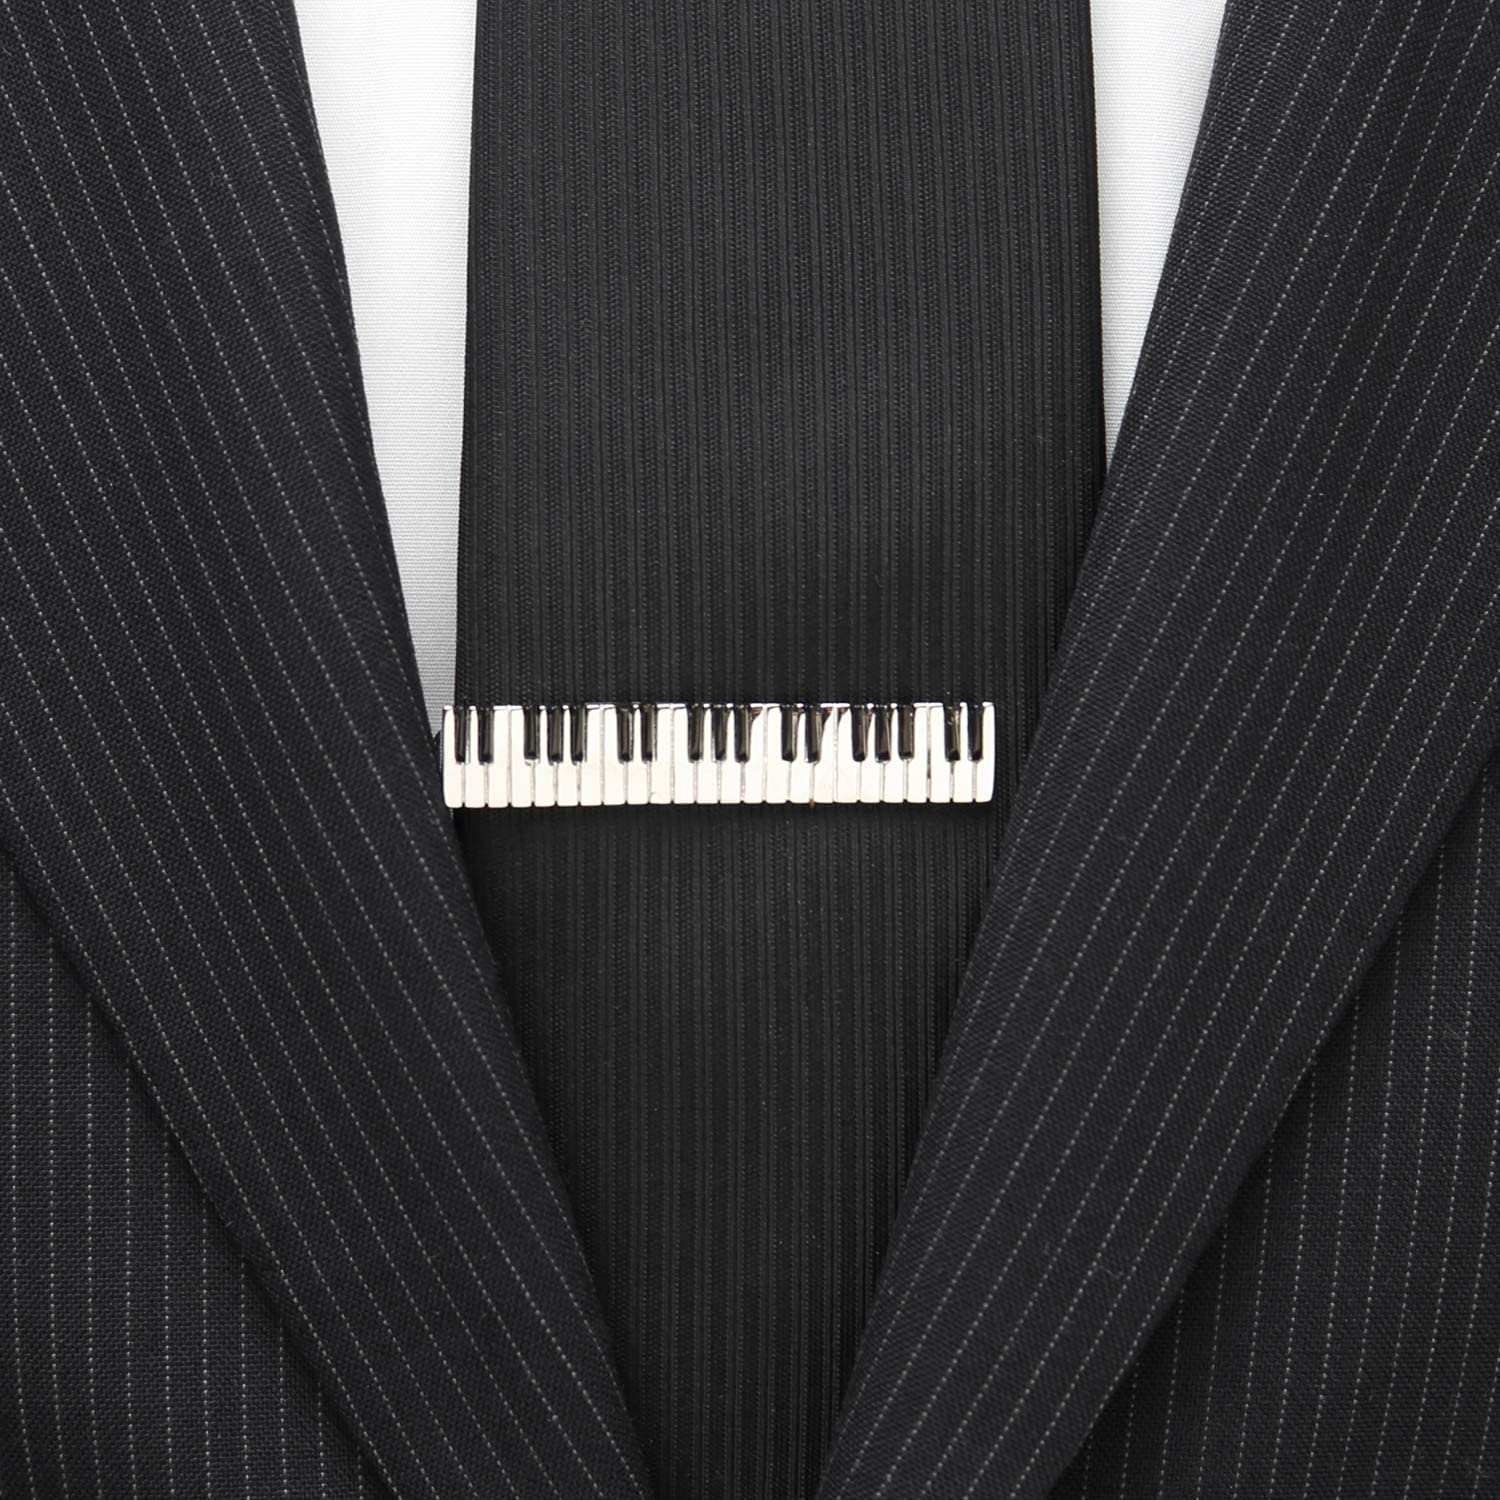 Piano Keys Tie Clip Ox and Bull Trading Co